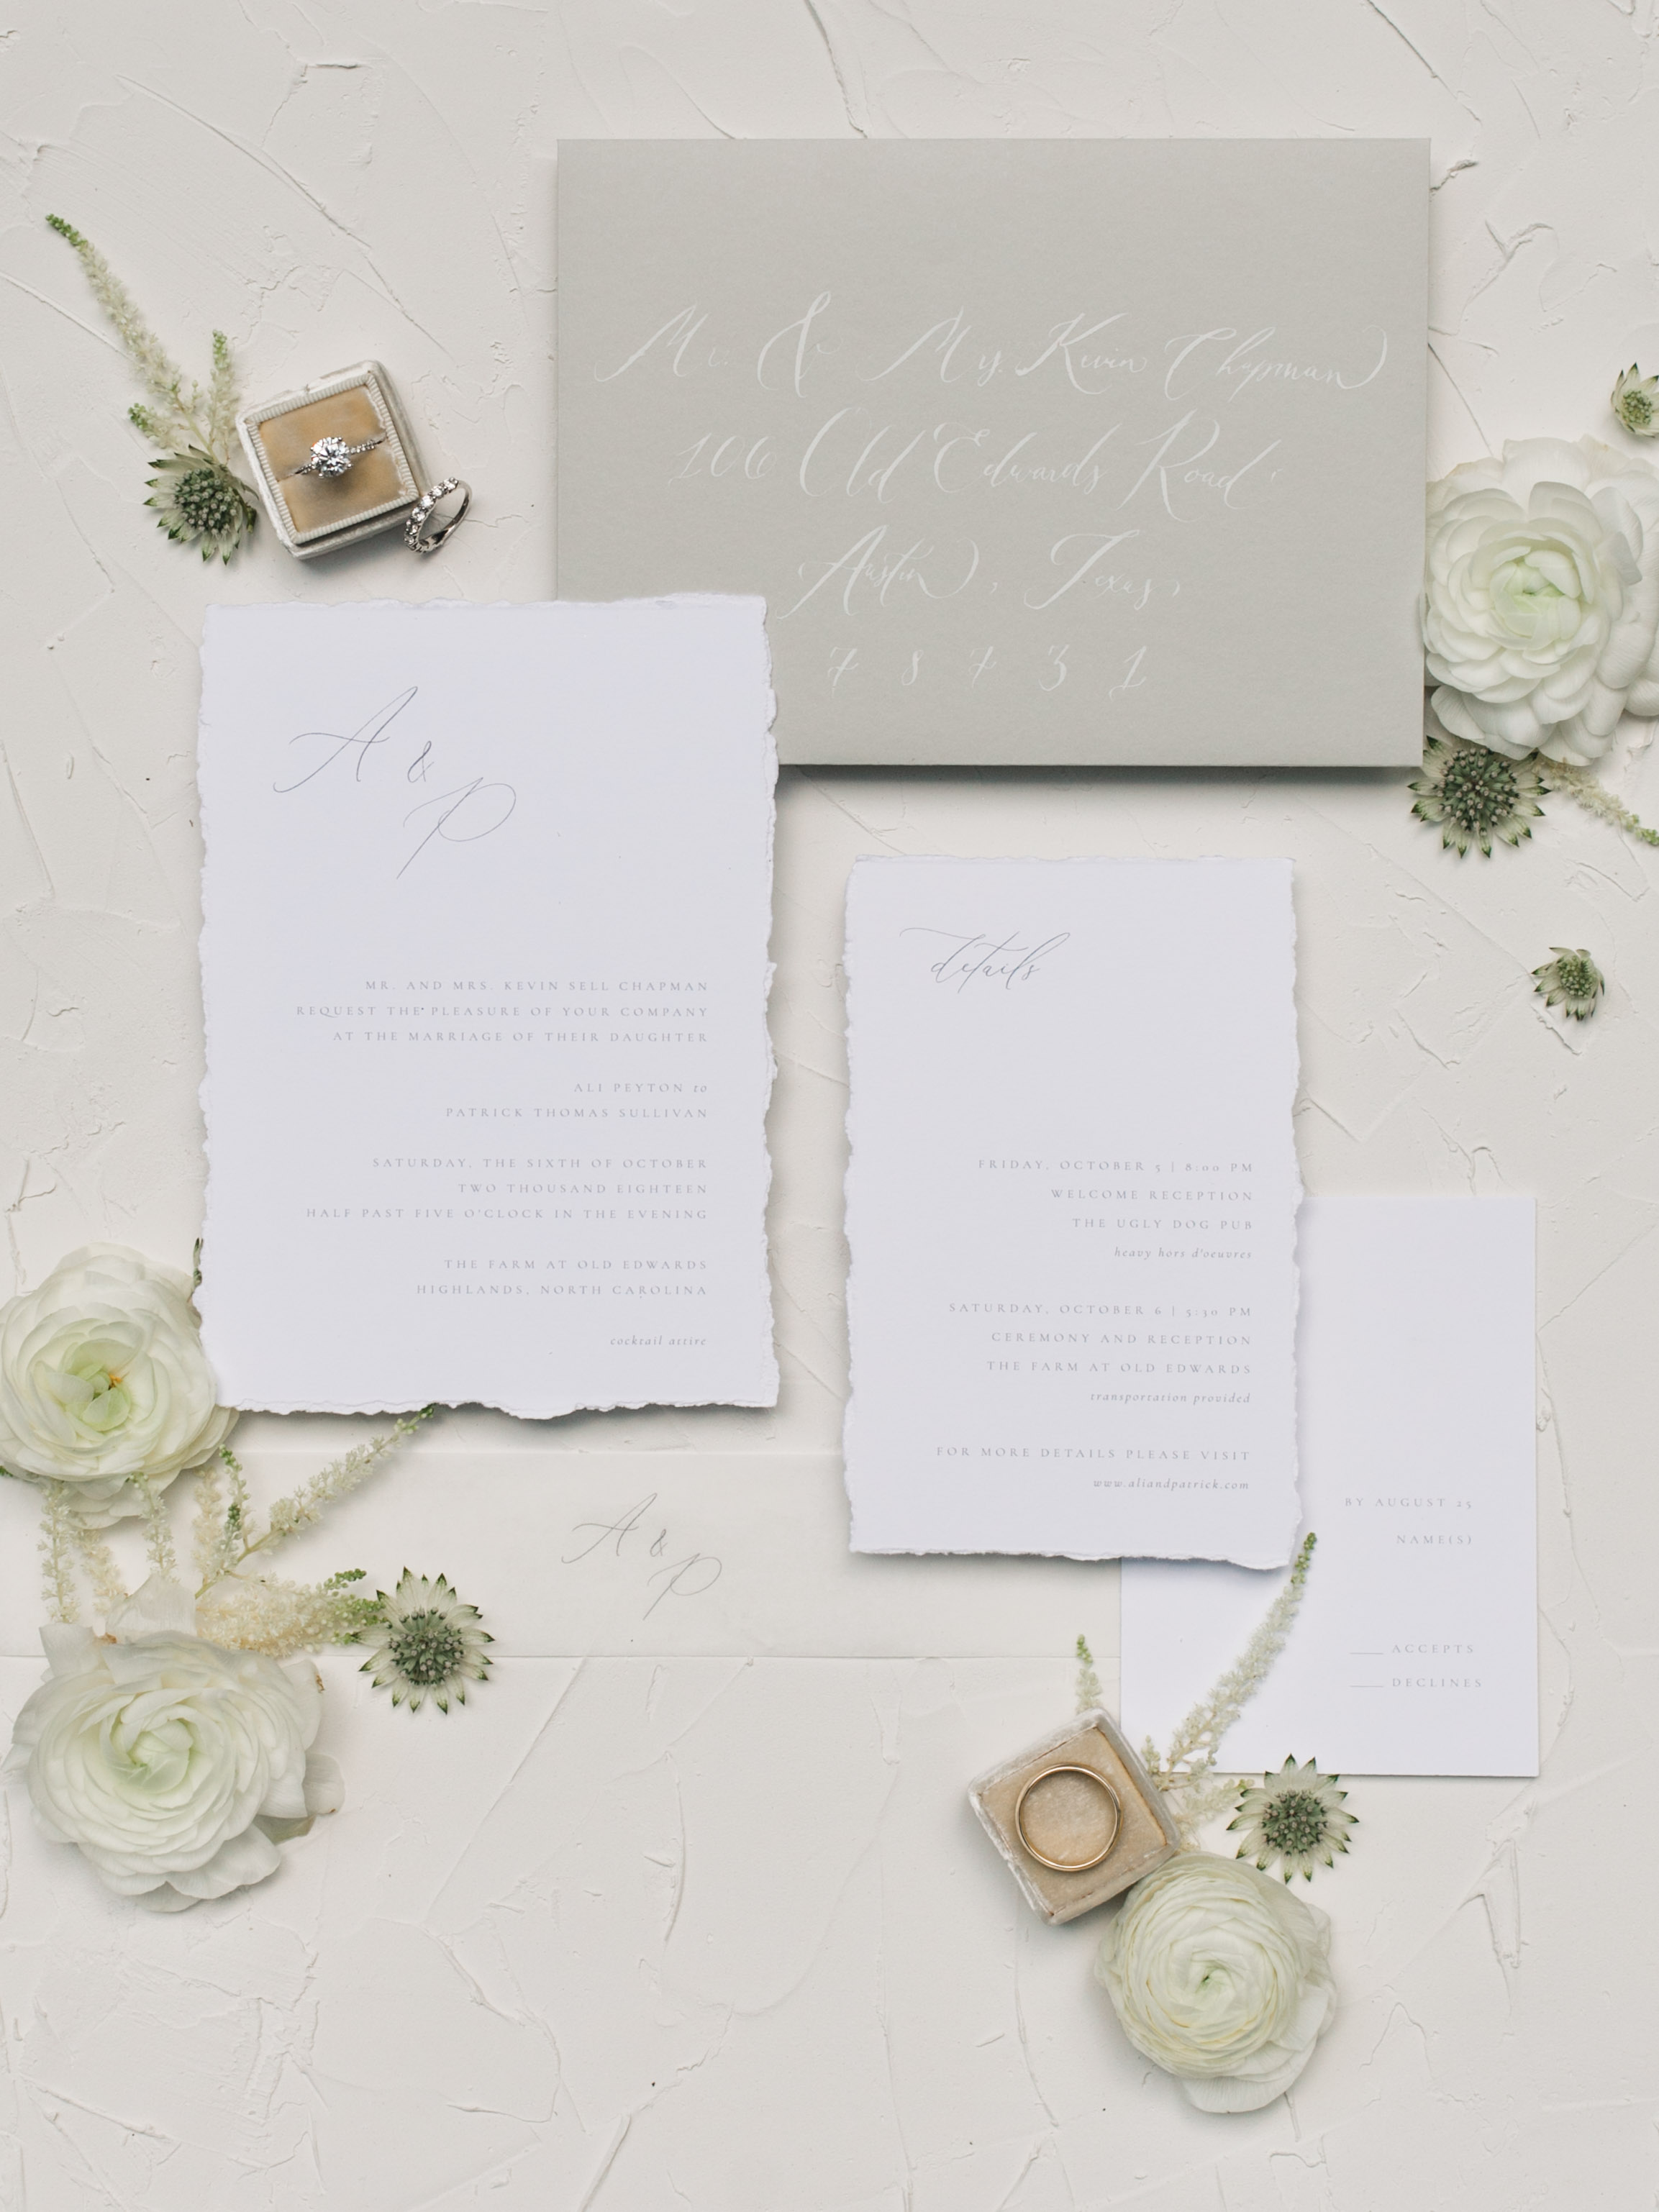 image: DASH Photography  invitations: August & White